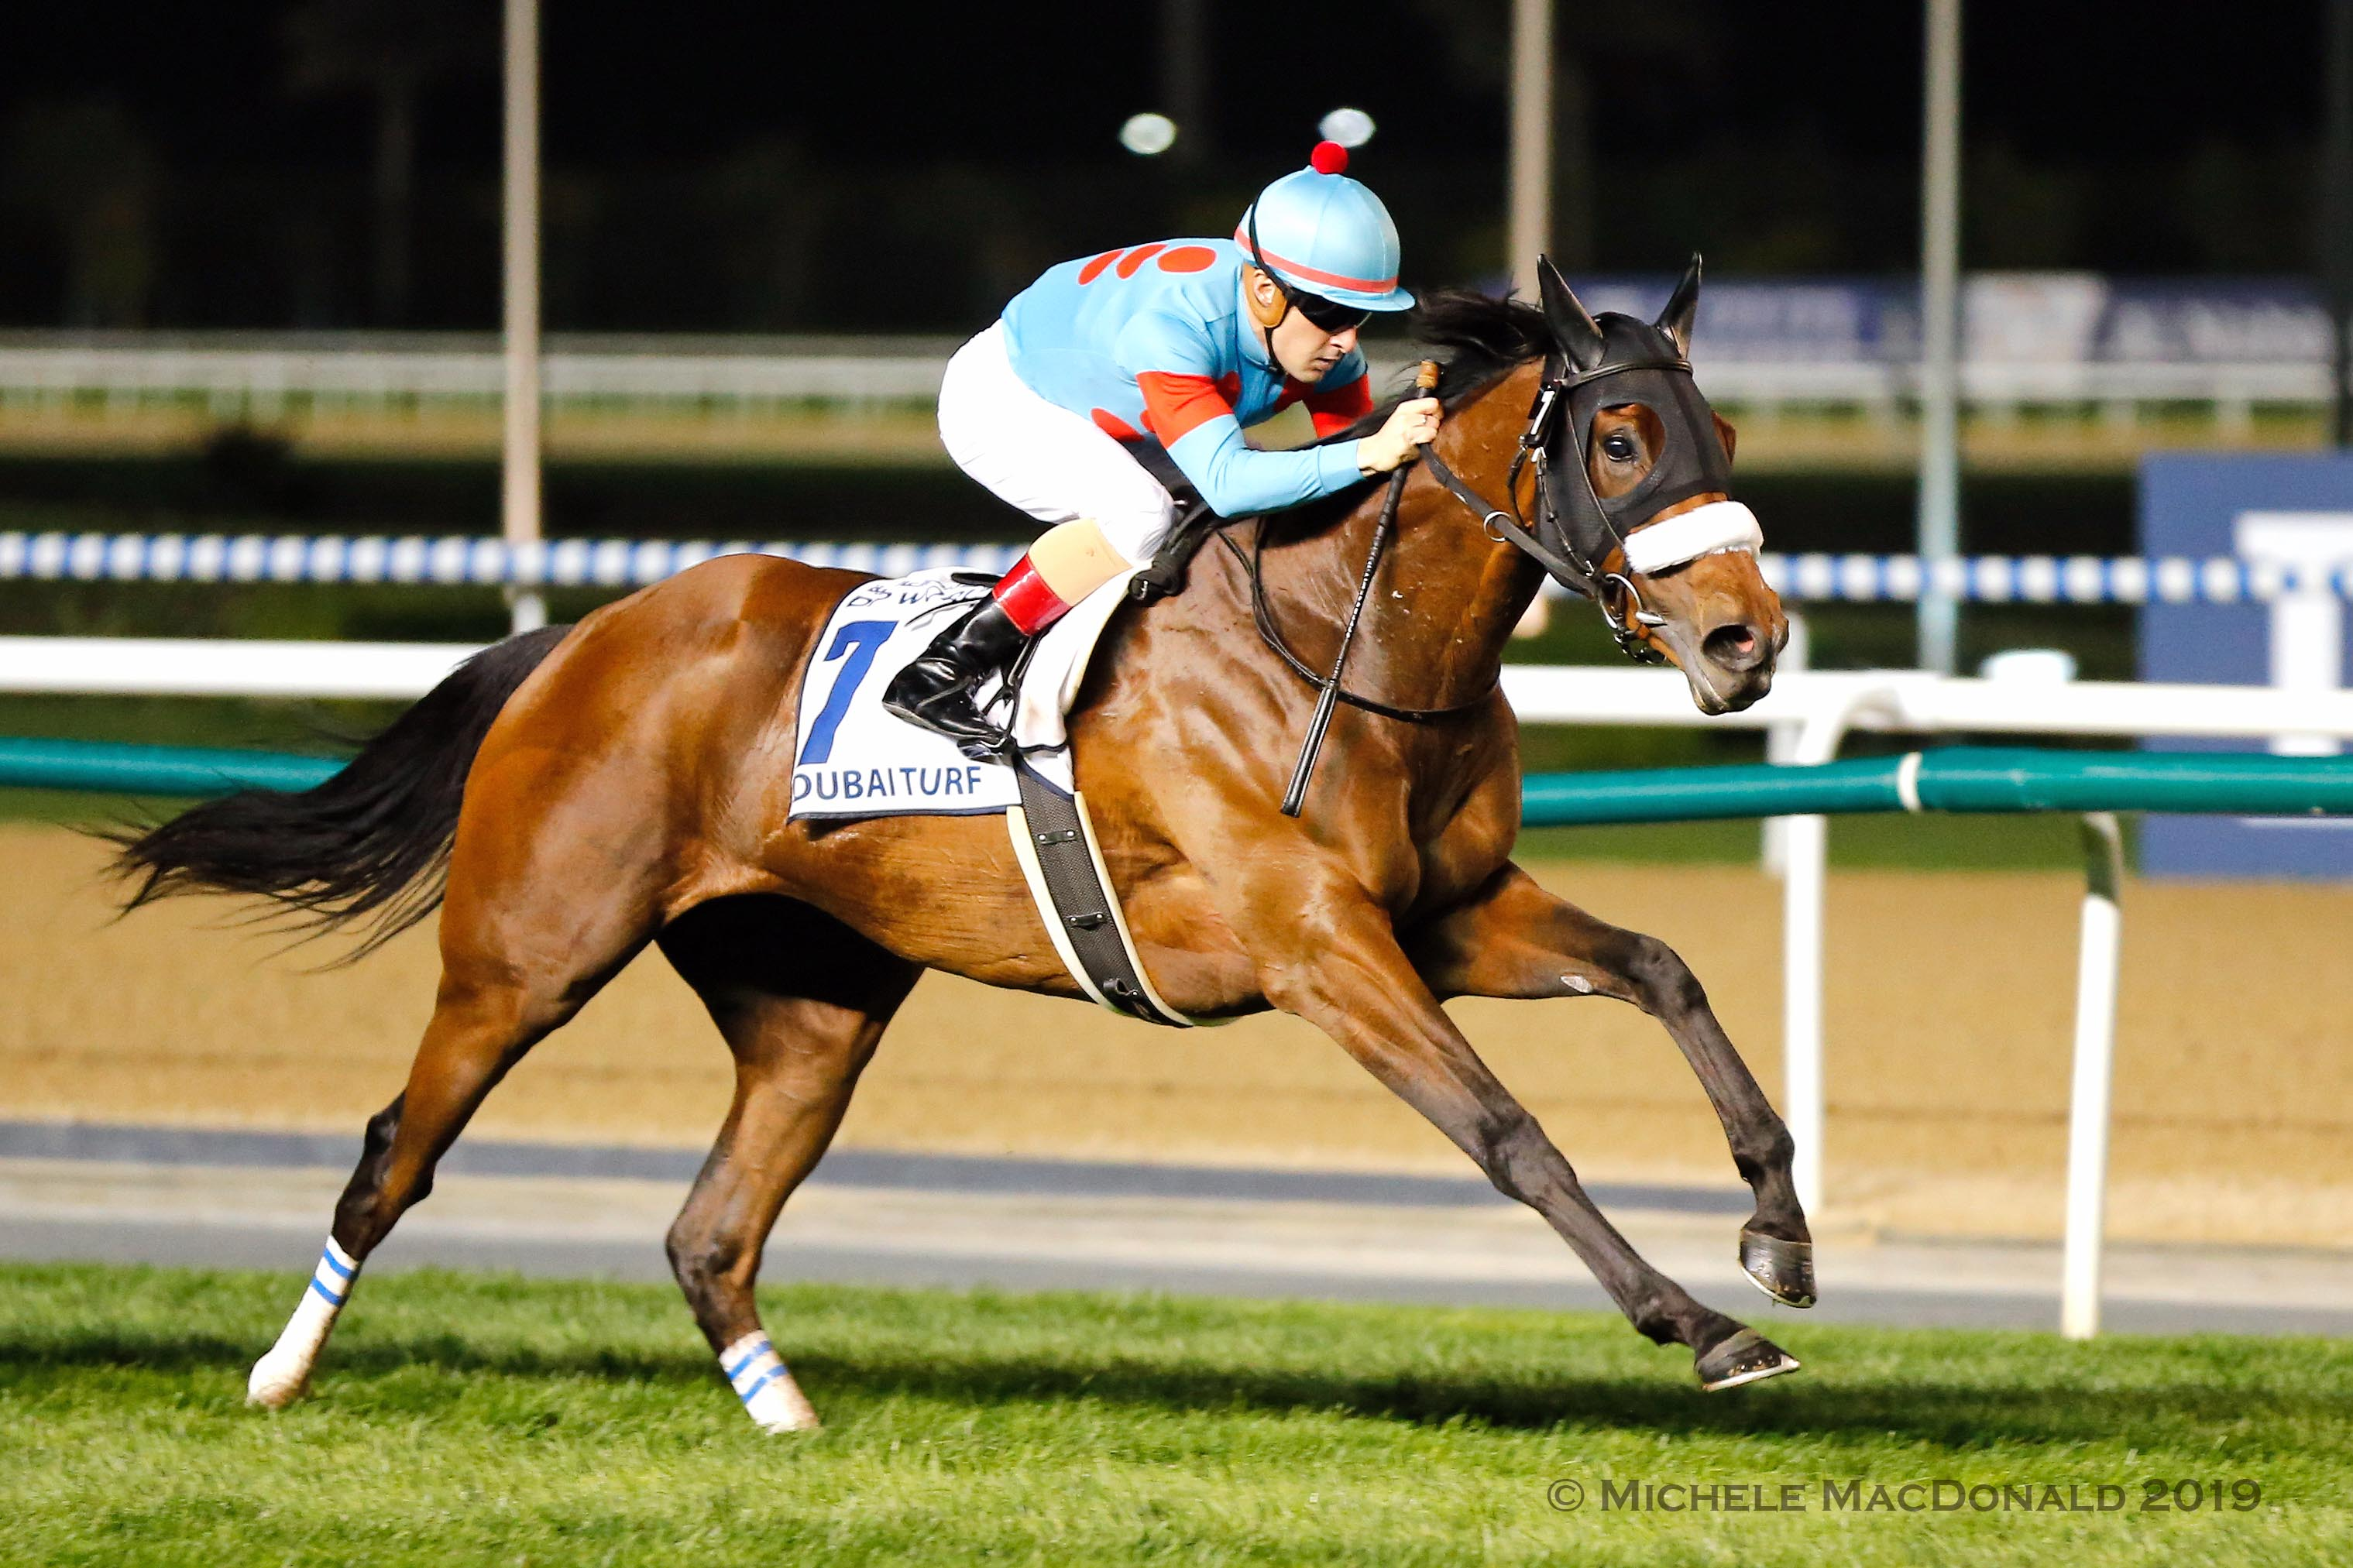 In a class of her own: Almond Eye (Christophe Lemaire) has the Dubai Turf firmly under control. Photo: Michele MacDonald